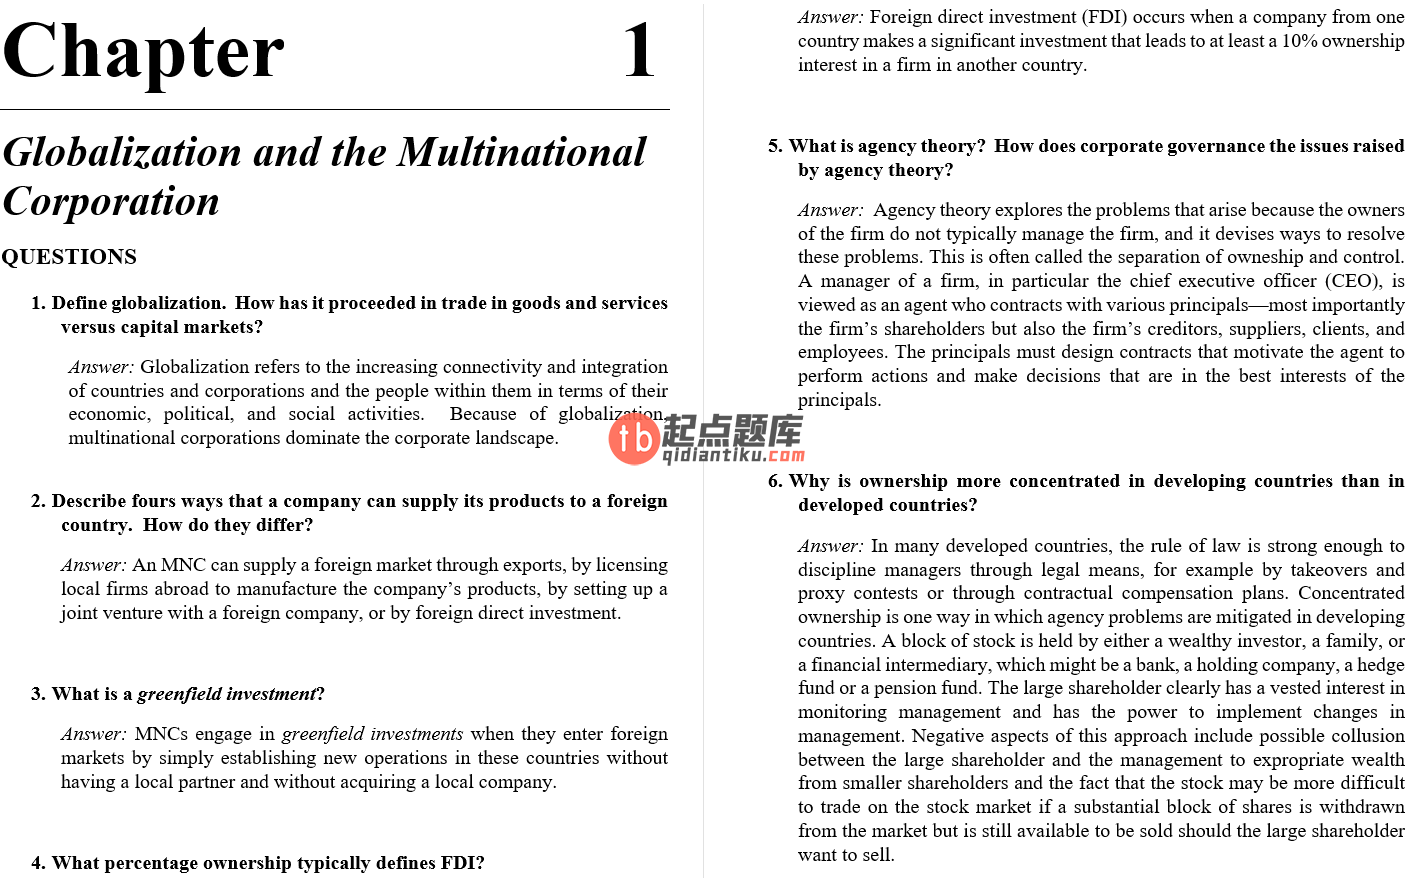 solution manual for International Financial Management 2nd Edition的图片 3